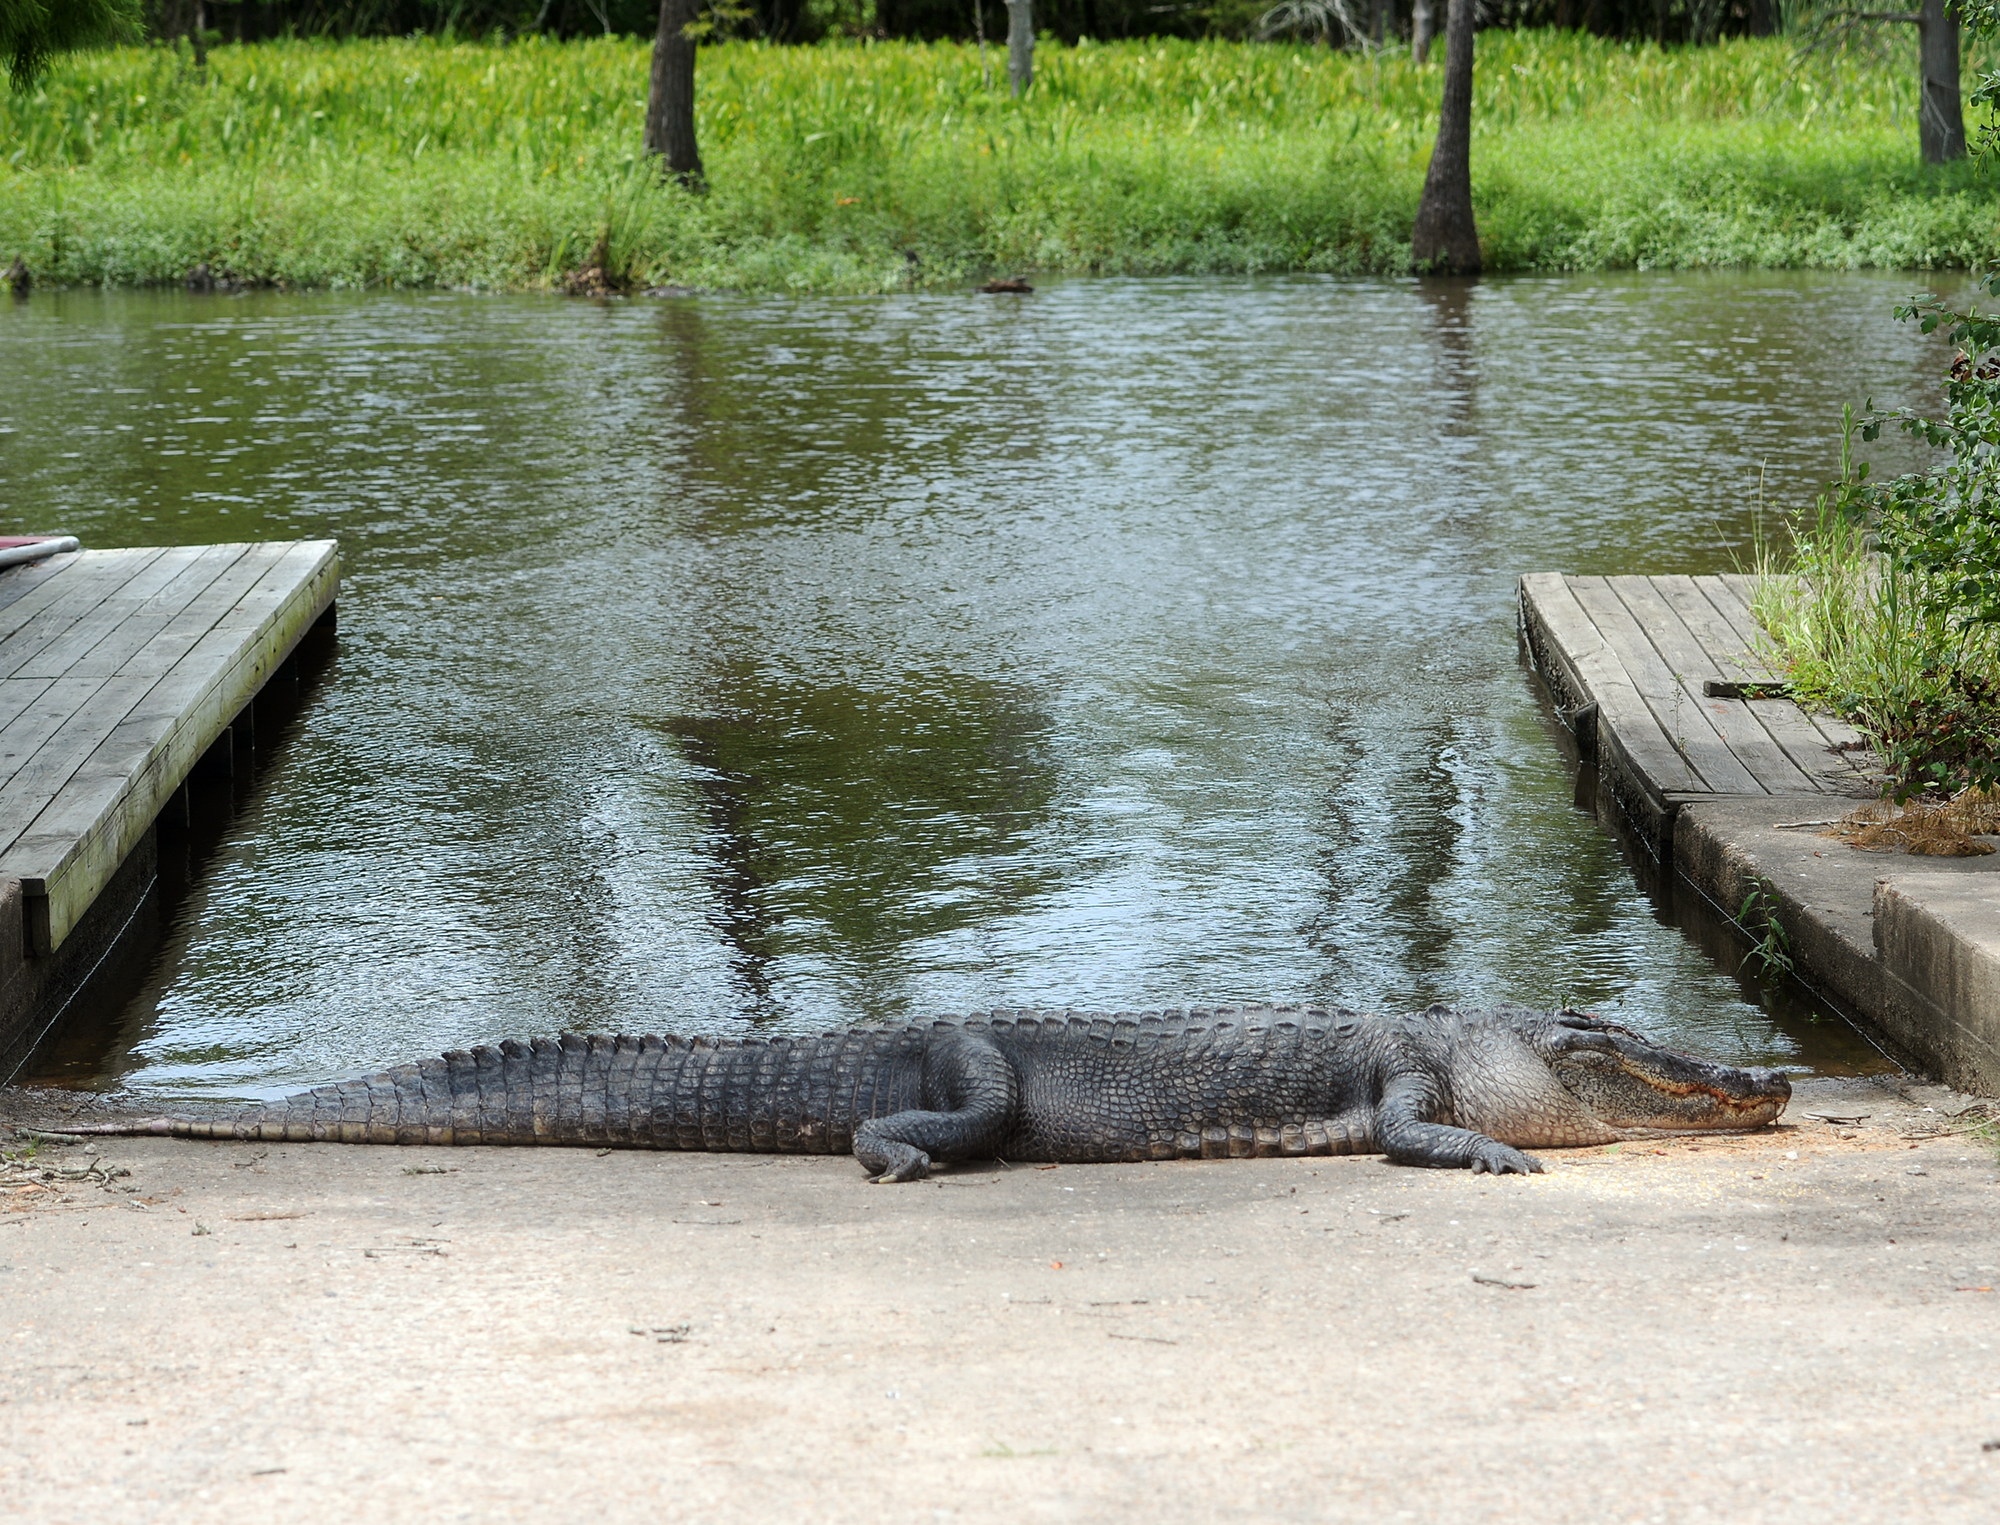 An alligator corpse lies next to the water at Burkart's Marina, Monday, July 6, 2015, in Orange, Texas. Officials are conducting an investigation into who may have killed the animal. Tommie Woodward died after an alligator attacked him during a late-night swim at the private Southeast Texas marina on July 3. (Jake Daniels/The Beaumont Enterprise via AP) MANDATORY CREDIT